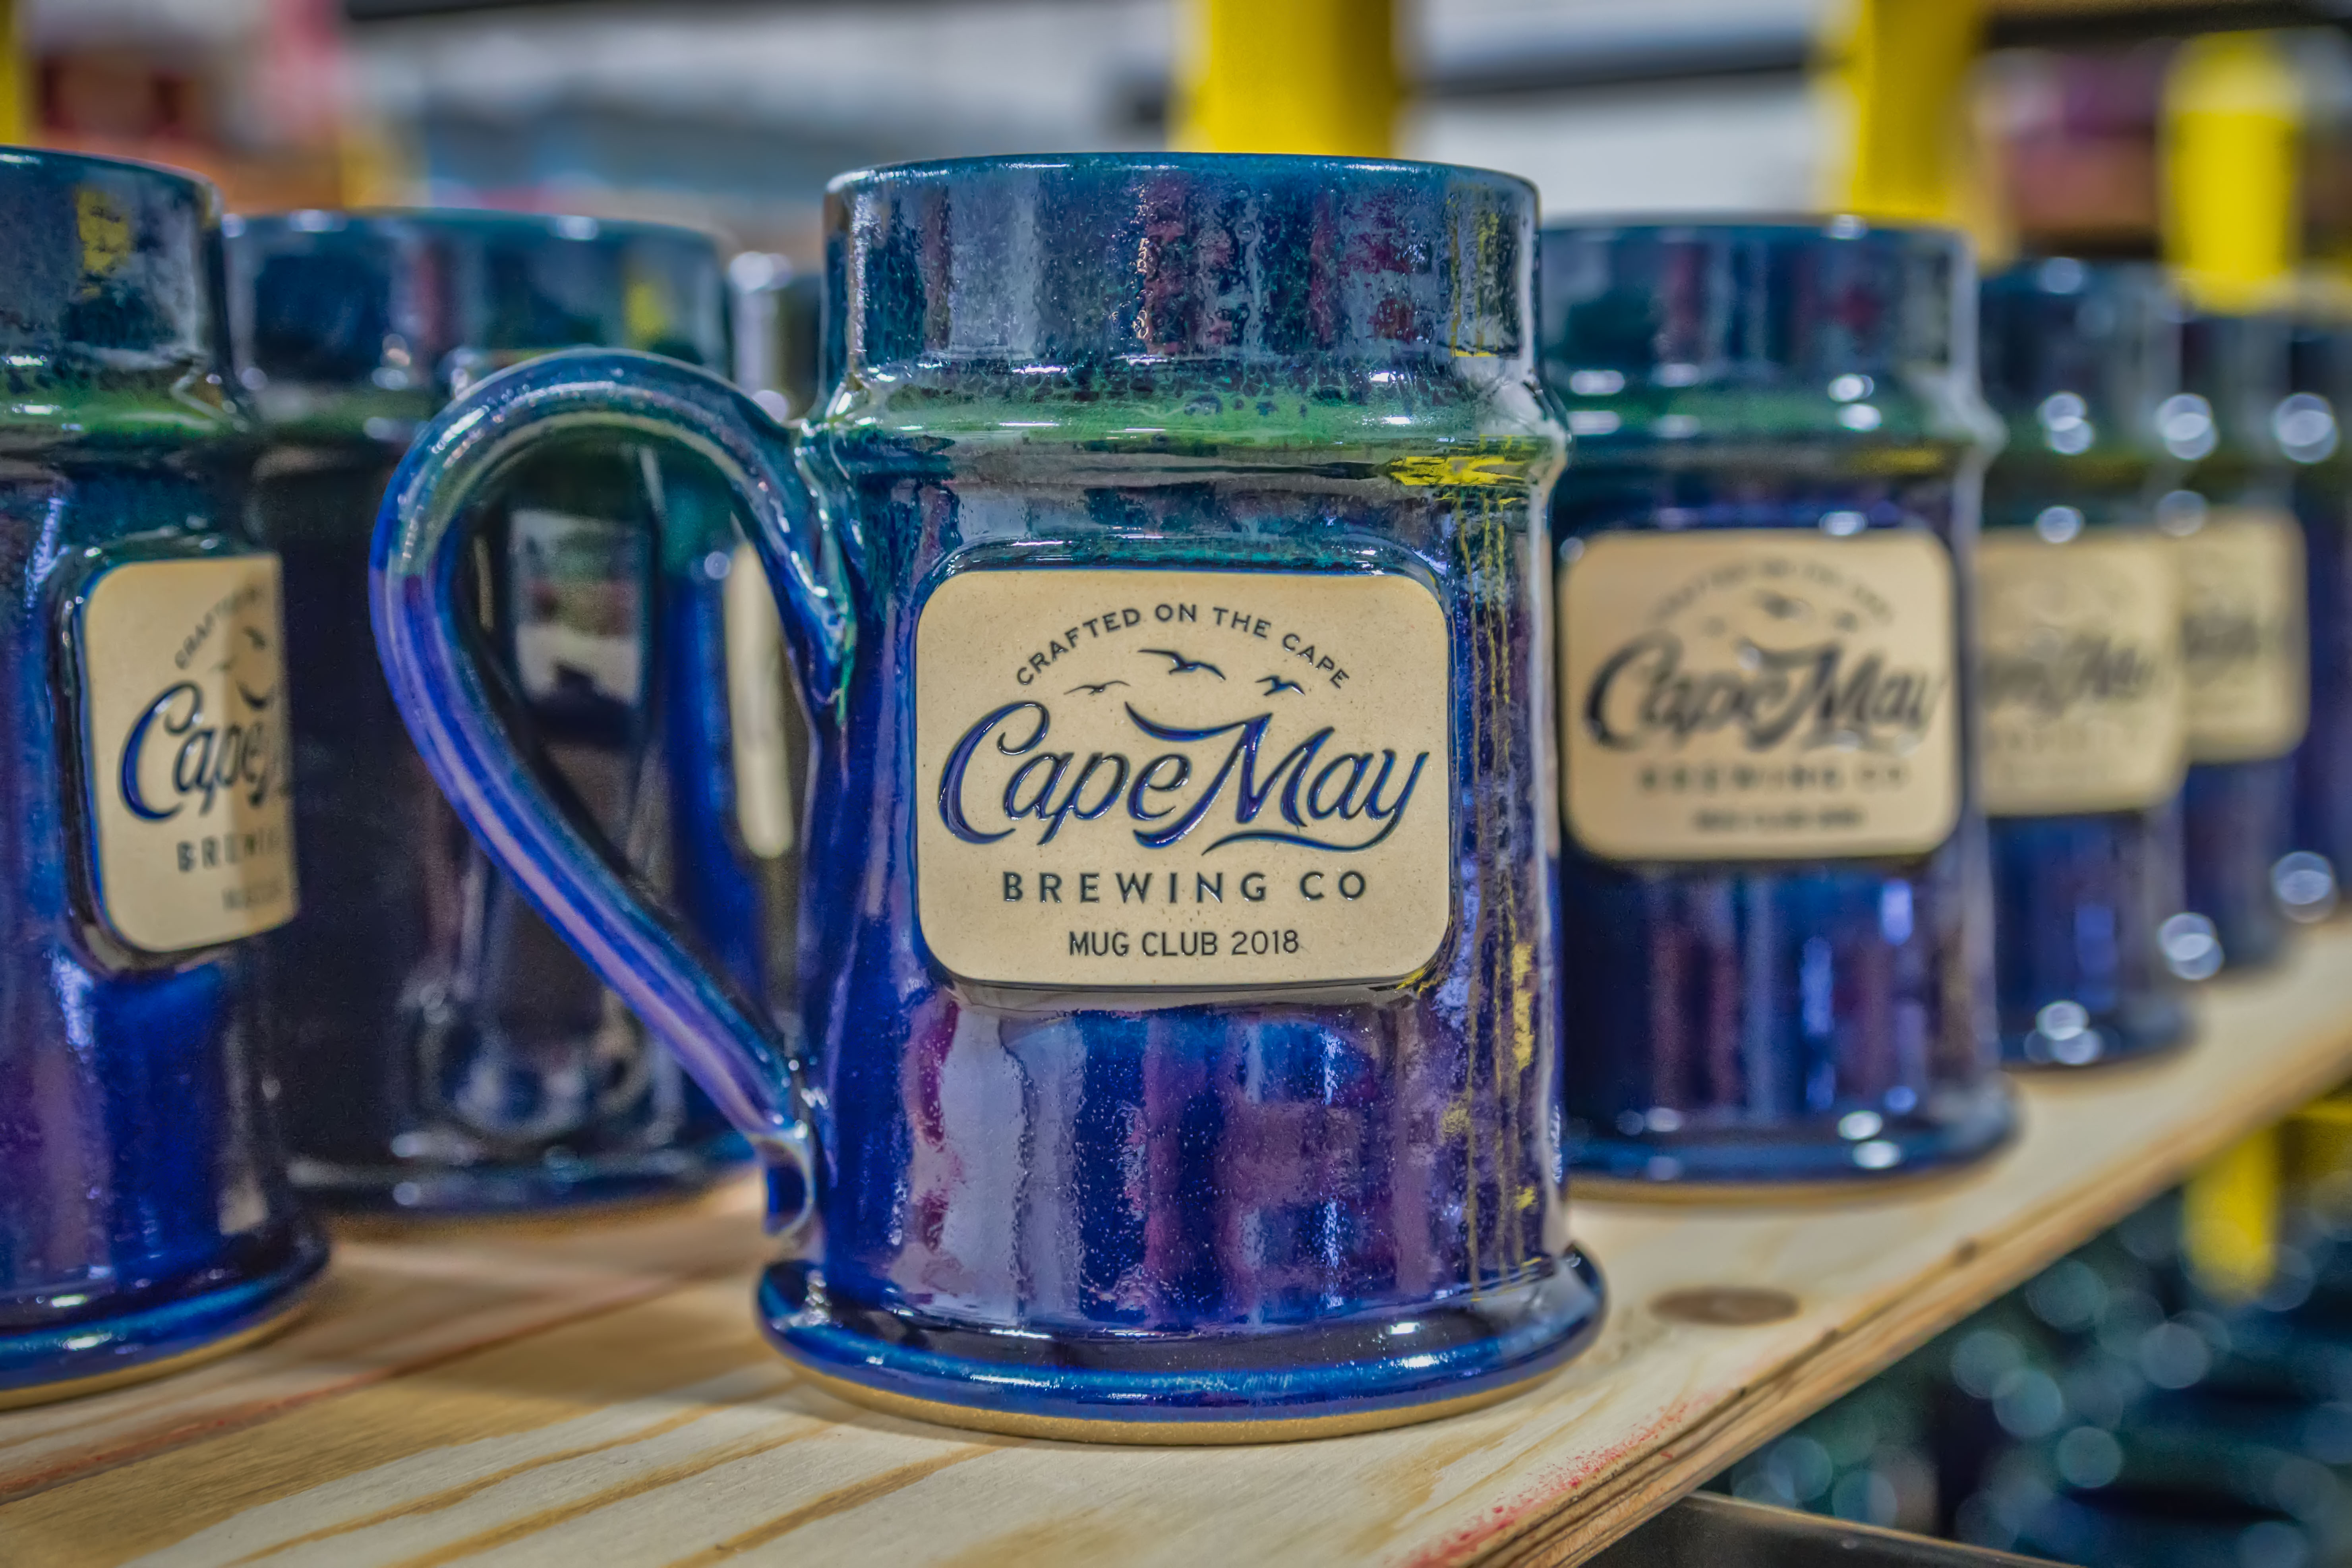 Cape May Brewing